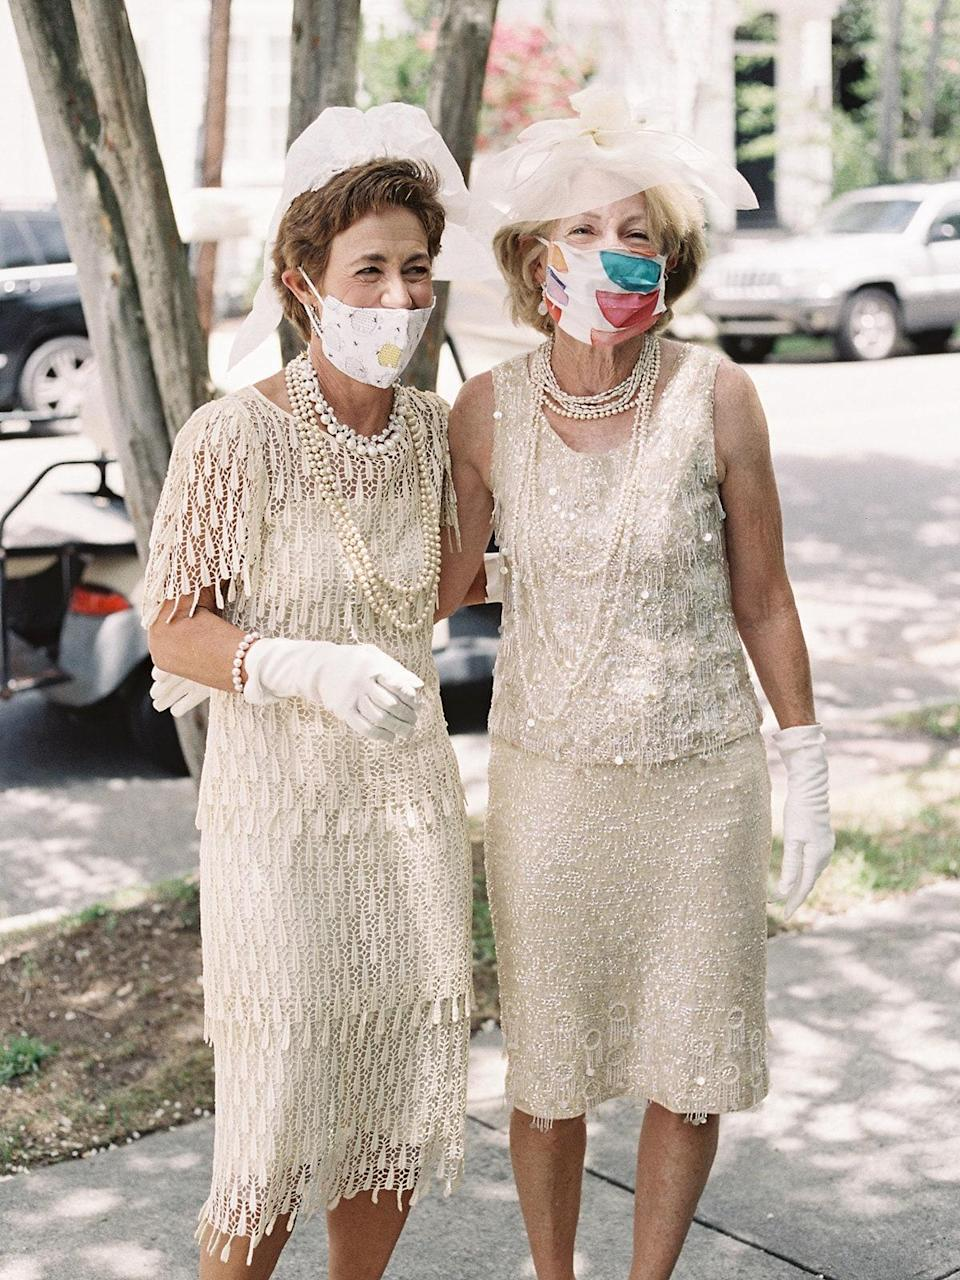 Some of my mom's oldest friends, who are also the mothers of some of <em>my</em> oldest friends, party crashed on their golf cart! They wore gloves, tissue paper veils, pearls, and the dresses they wore to their own wedding rehearsals. It was hilarious!